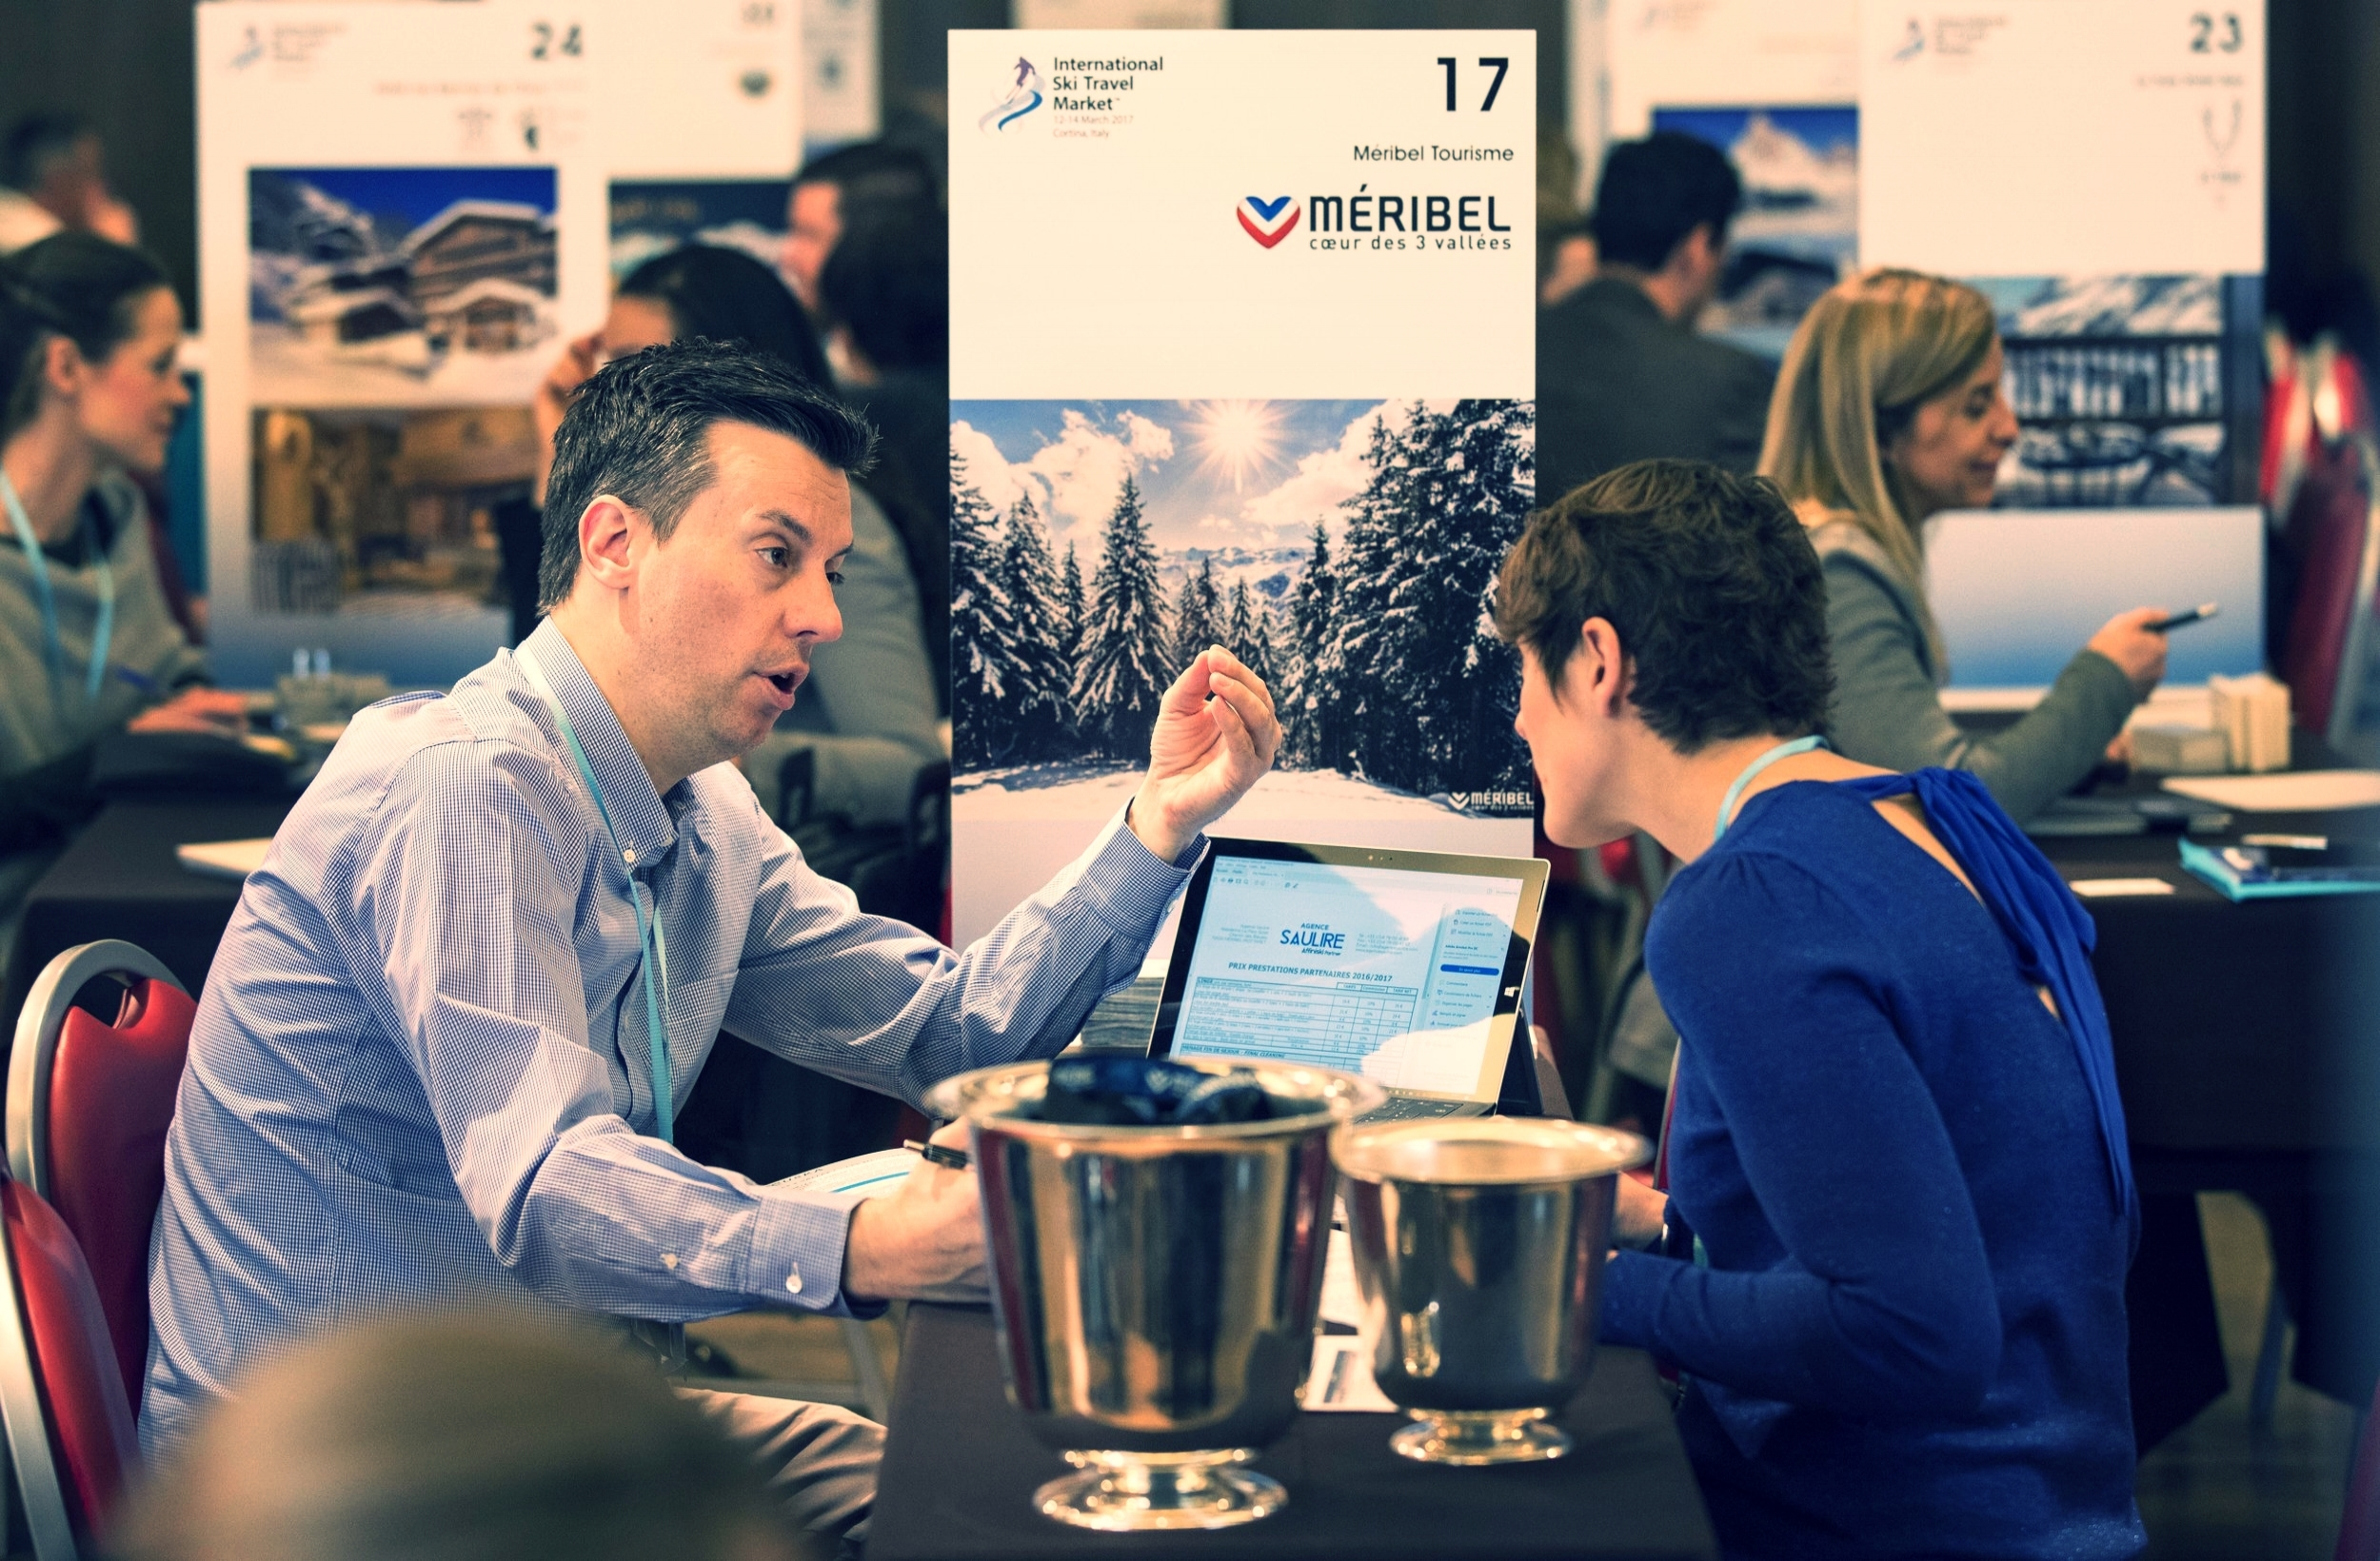 JOIN ISTM AS AN EXHIBITOR - We put qualified international buyers right across the table from you. We provide focused and targeted pre-scheduled meetings with the power to transform your business.